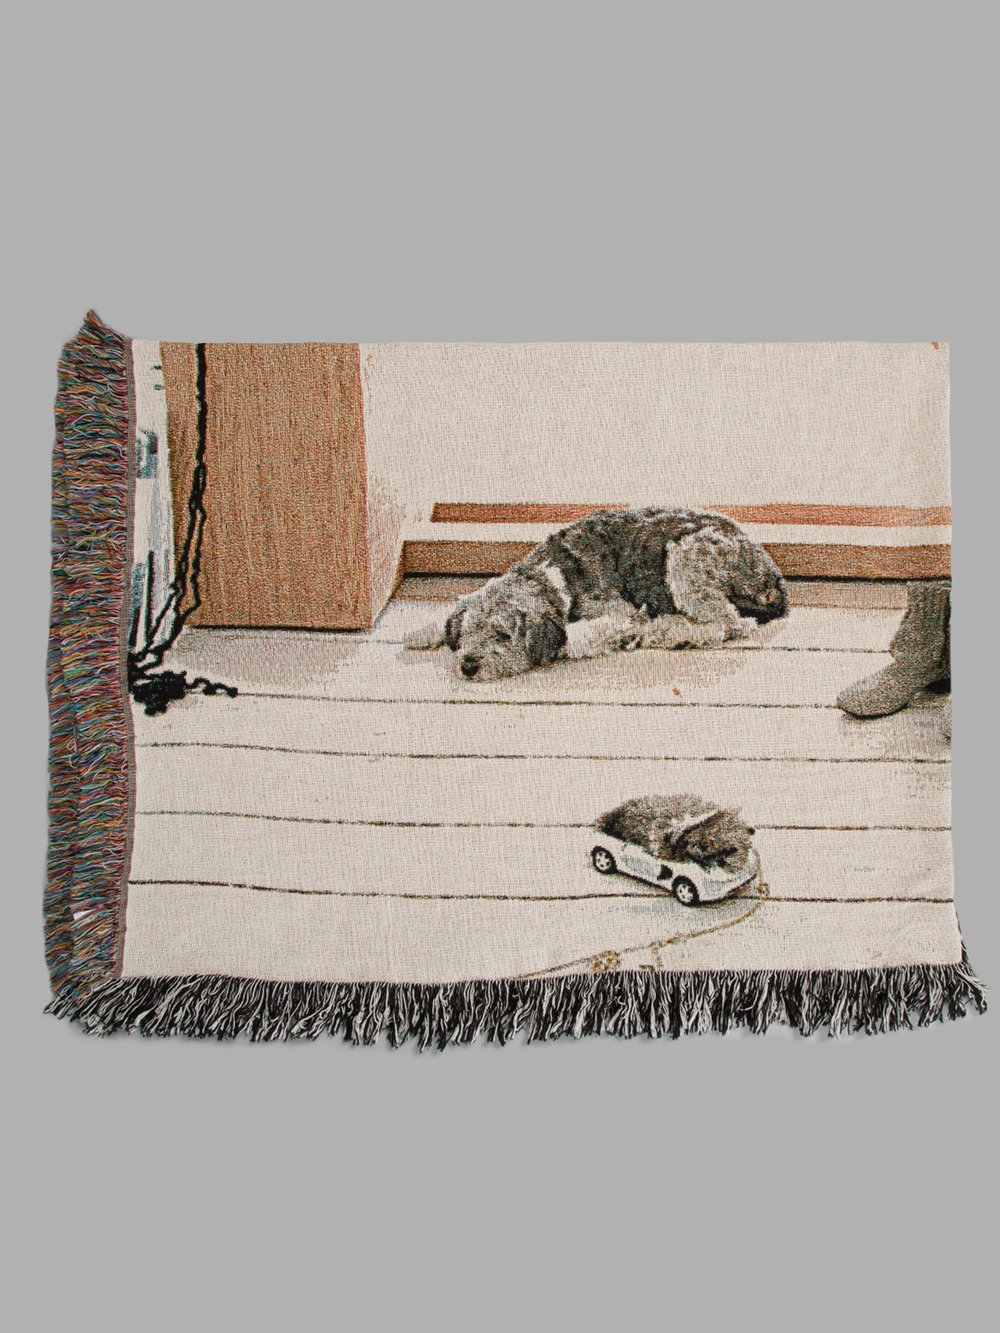 BLESS MULTICOLORED N.54 REMEMBRANCE SUBITO BLANKET